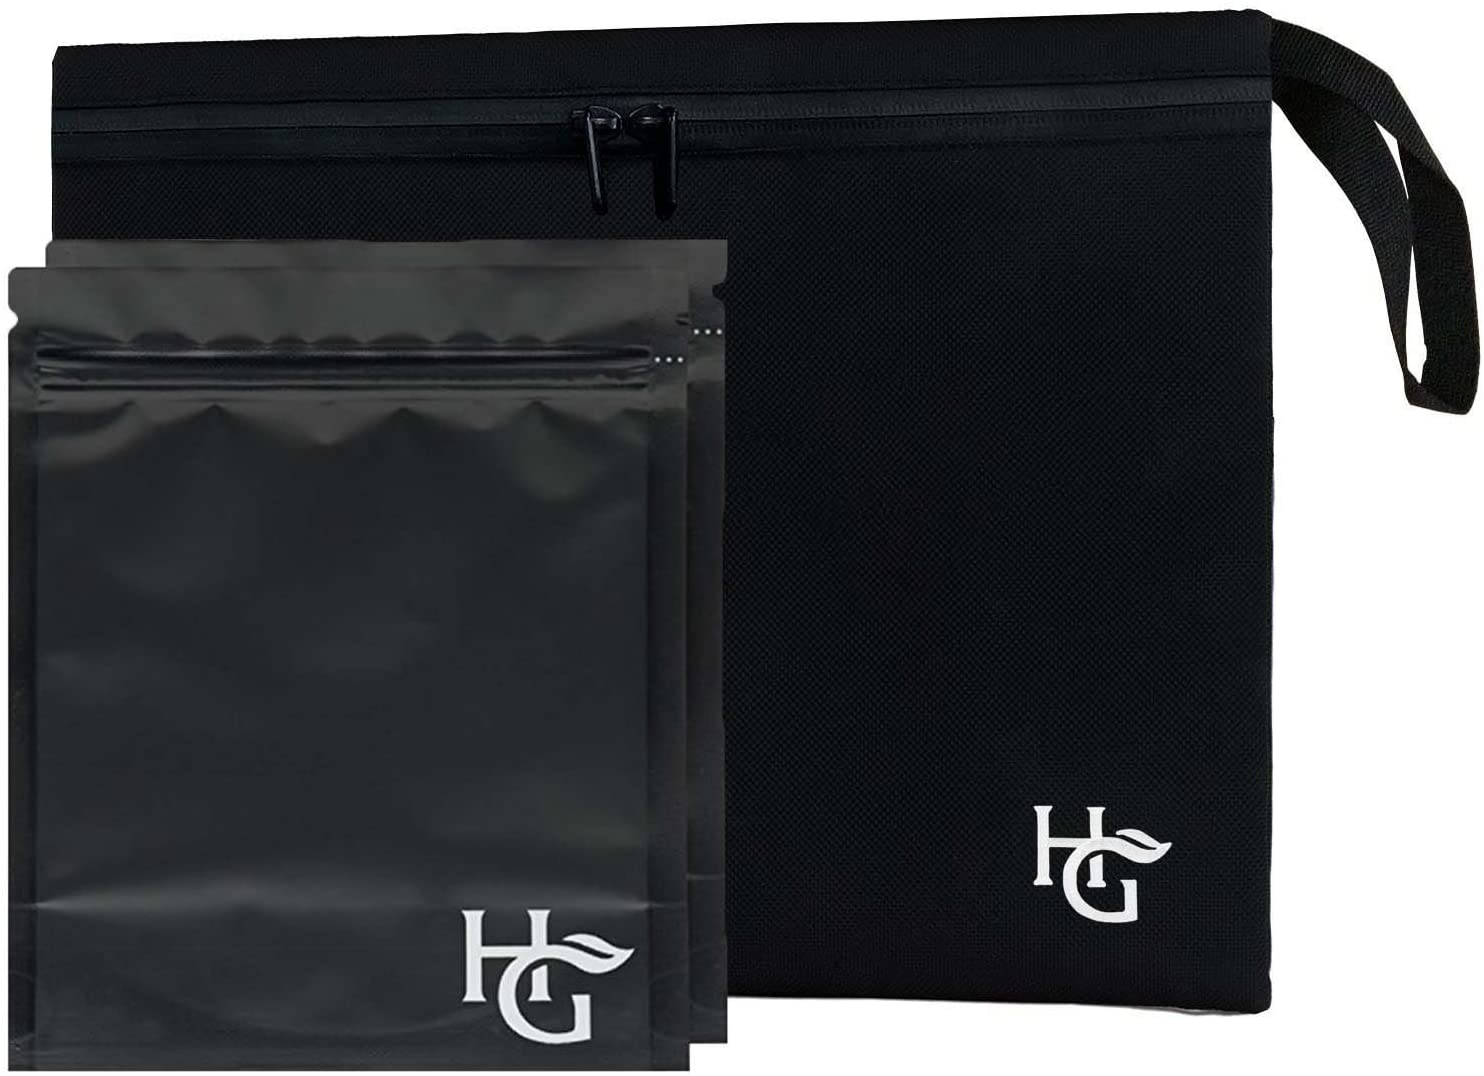 Large Discreet Smell Proof Bag (12x10 inches, Holds 3 Ounces) - Comes with 2 Large Resealable Bags to Store Dried Foods, Herbs and Consumable Goods